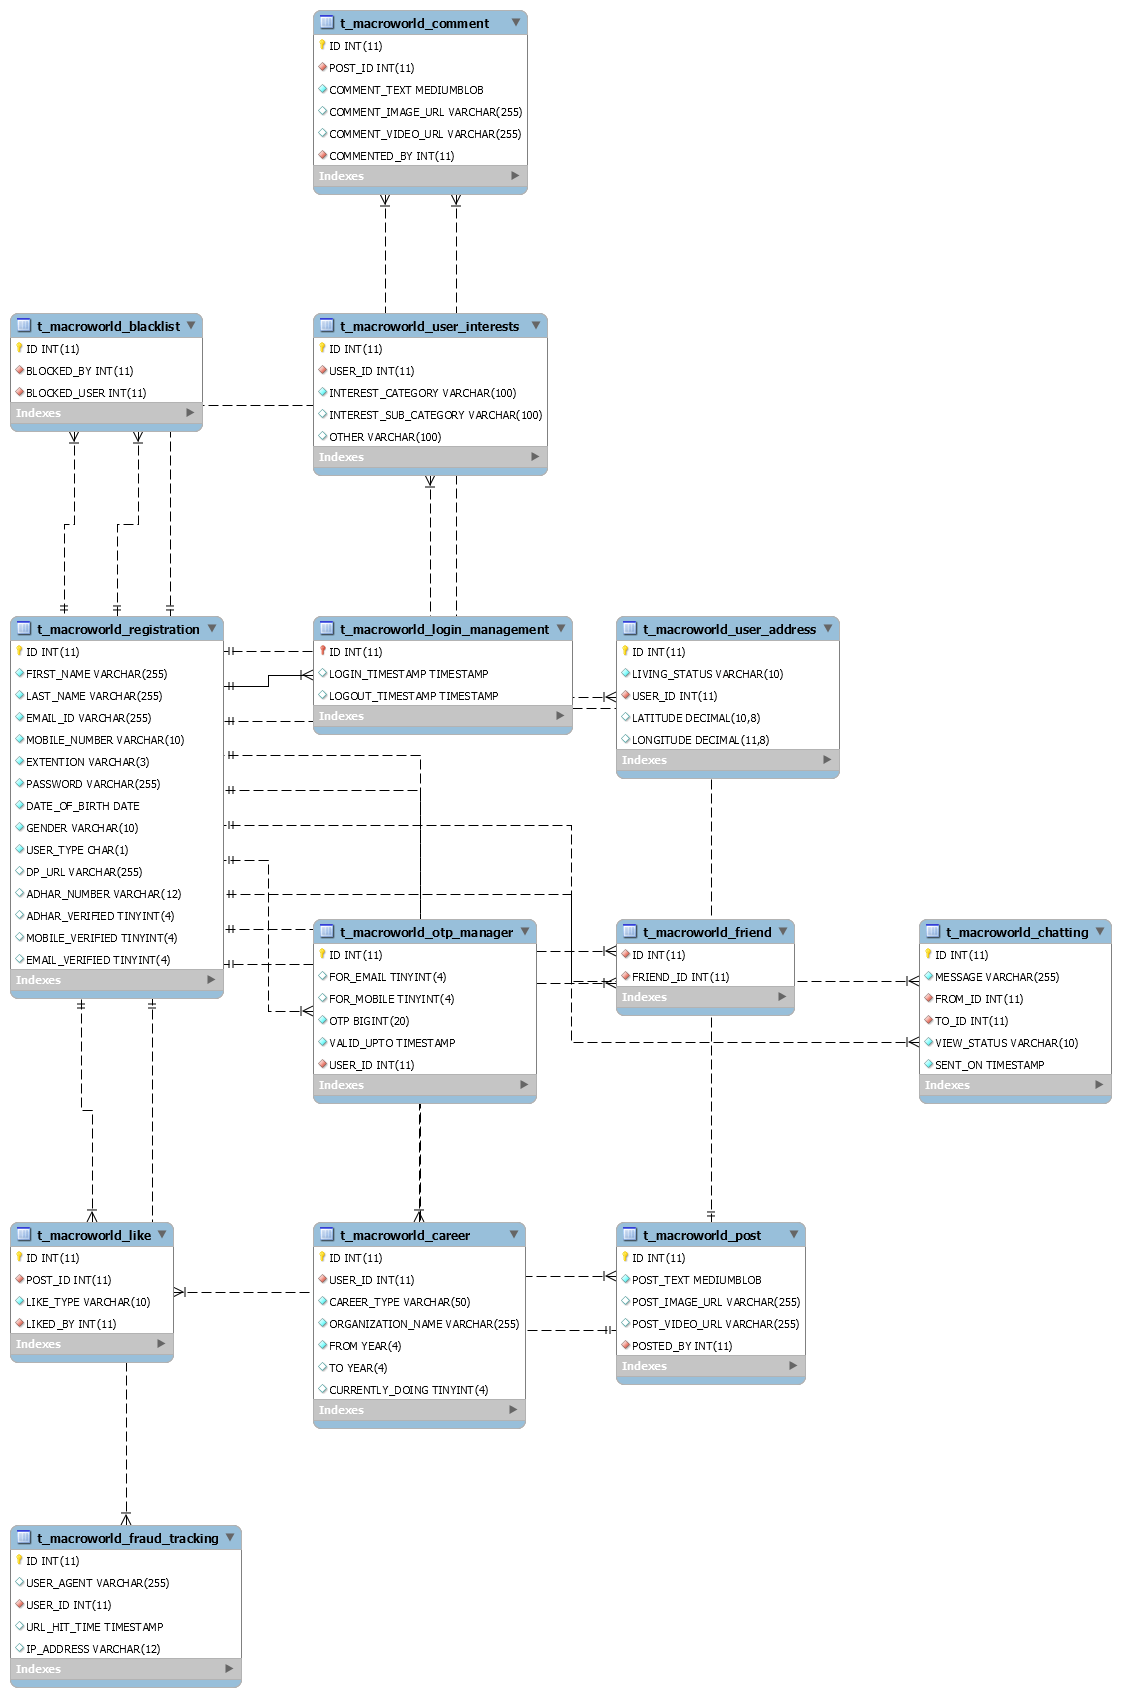 mysql - Fetch multiple columns from multiple tables where any table may have 0 or any number of rows - Stack Overflow